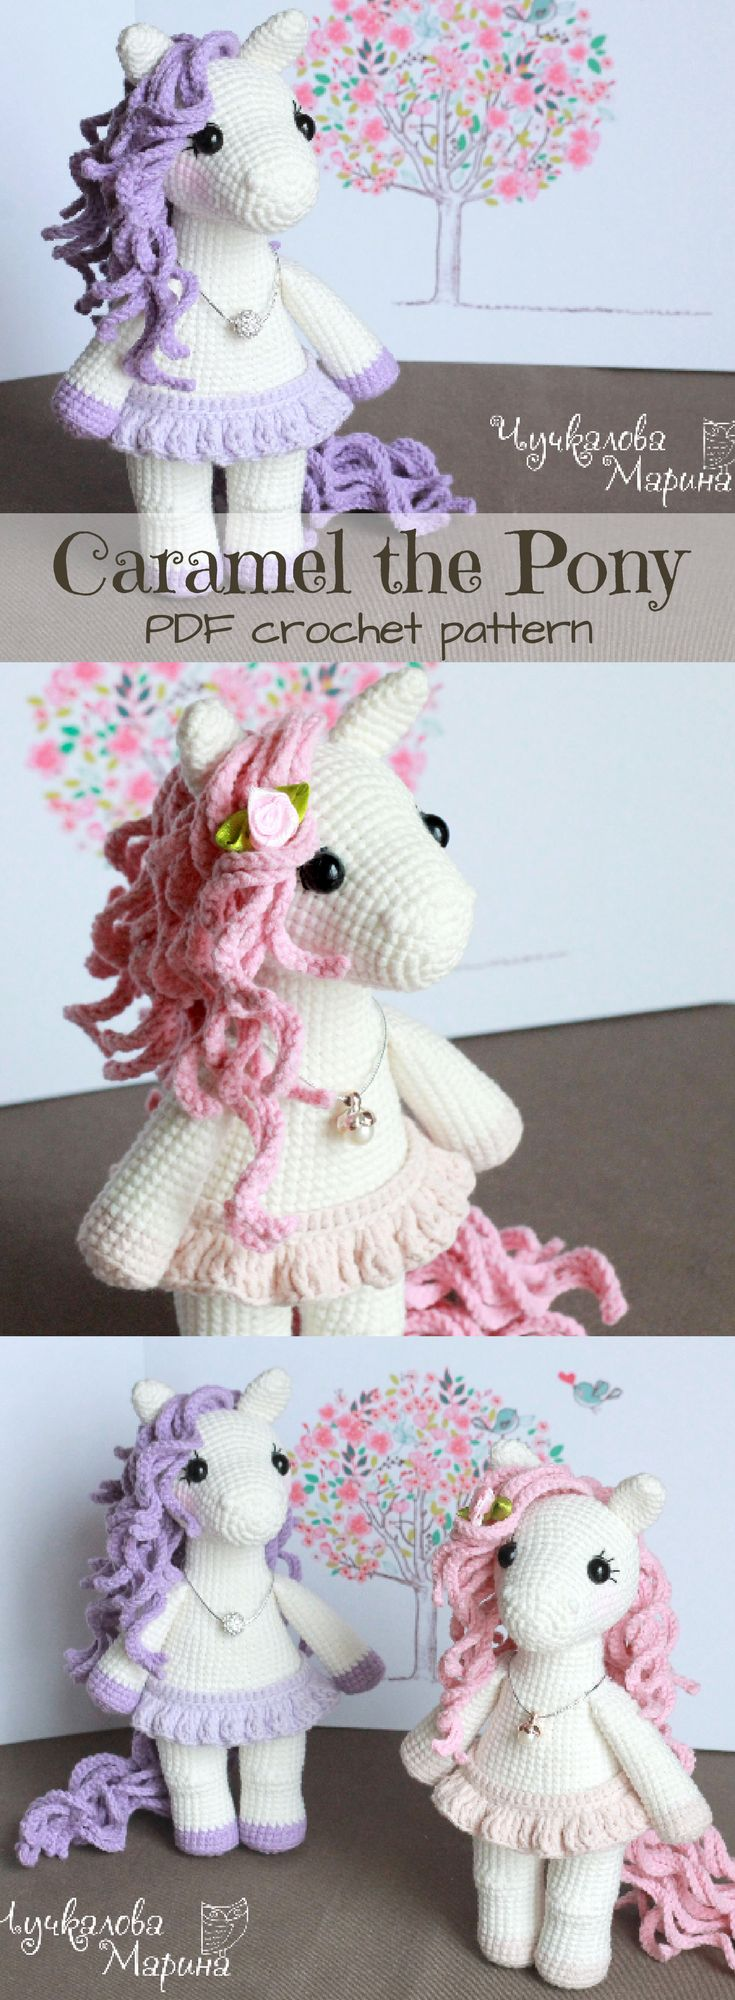 What a gorgeous crochet pattern!!! I love this horse stuffed animal's long curly hair! Perfect pony amigurumi for a horse-loving girl! #etsy #ad #pdf #instantdownload #printablepattern